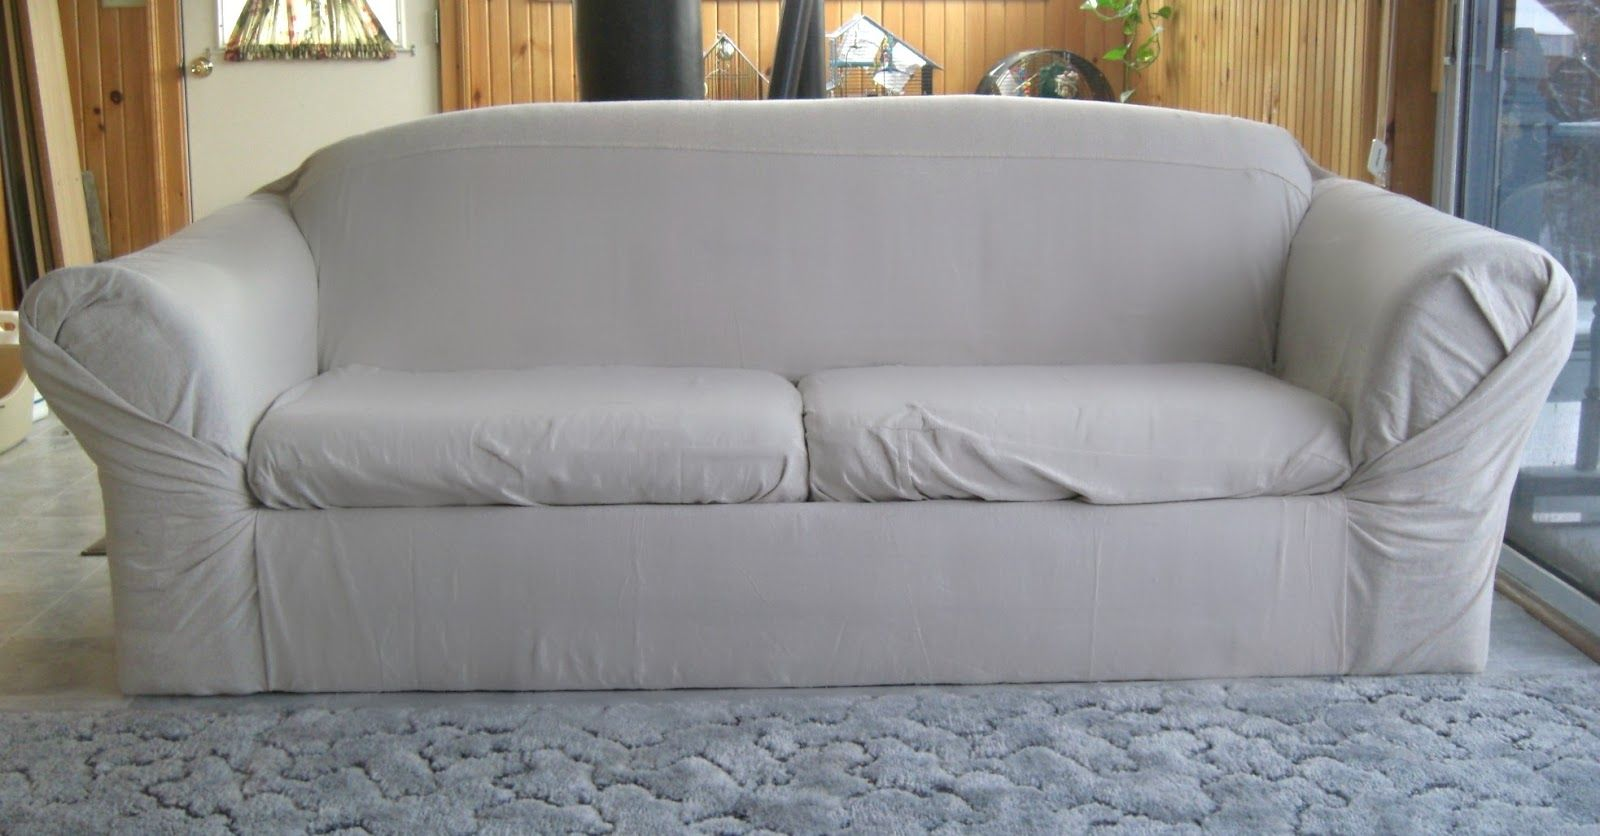 Mommyu0027s Middle Ground: How To ReCover A Couch   After